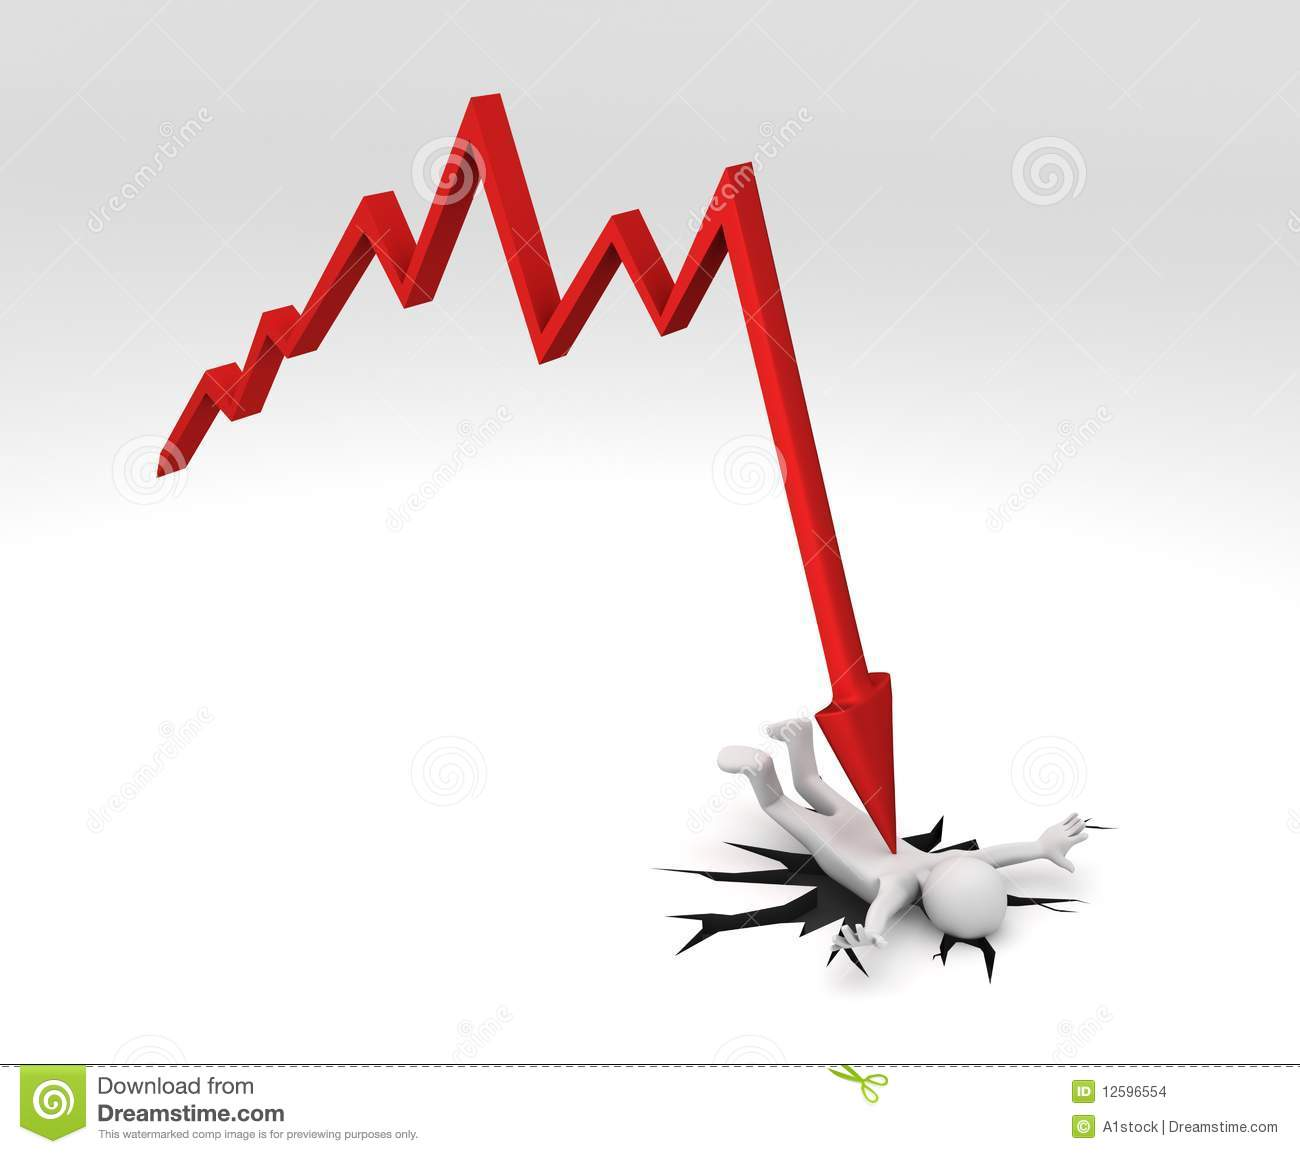 Chart Crashing Down On Person Stock Illustration ...